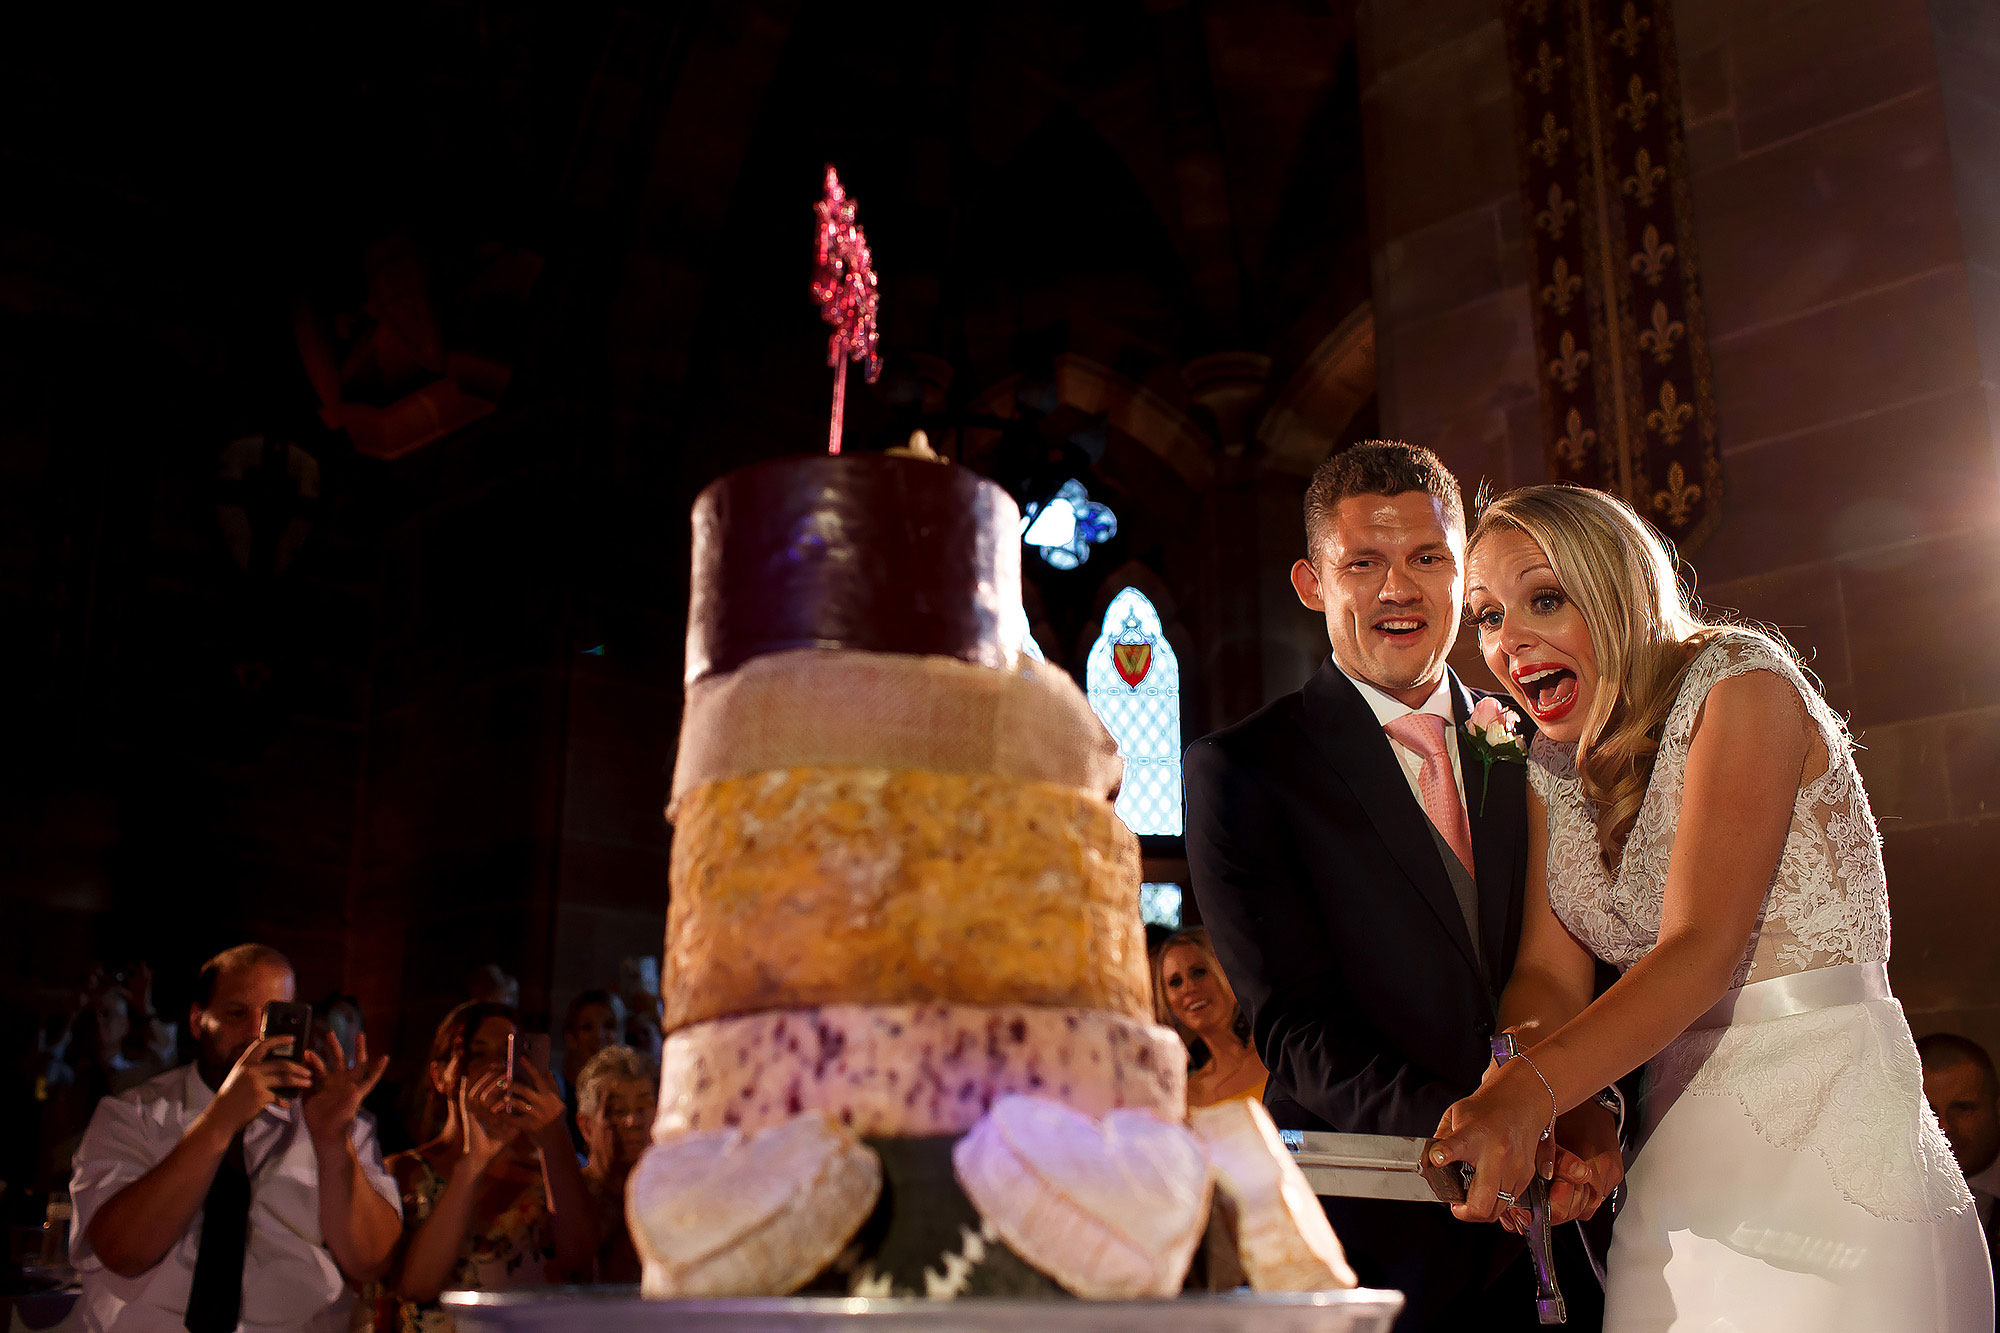 Bride and groom cutting 5 tier cheese wedding cake with sword at Peckforton Castle | Peckforton Castle Wedding by Toni Darcy Photography